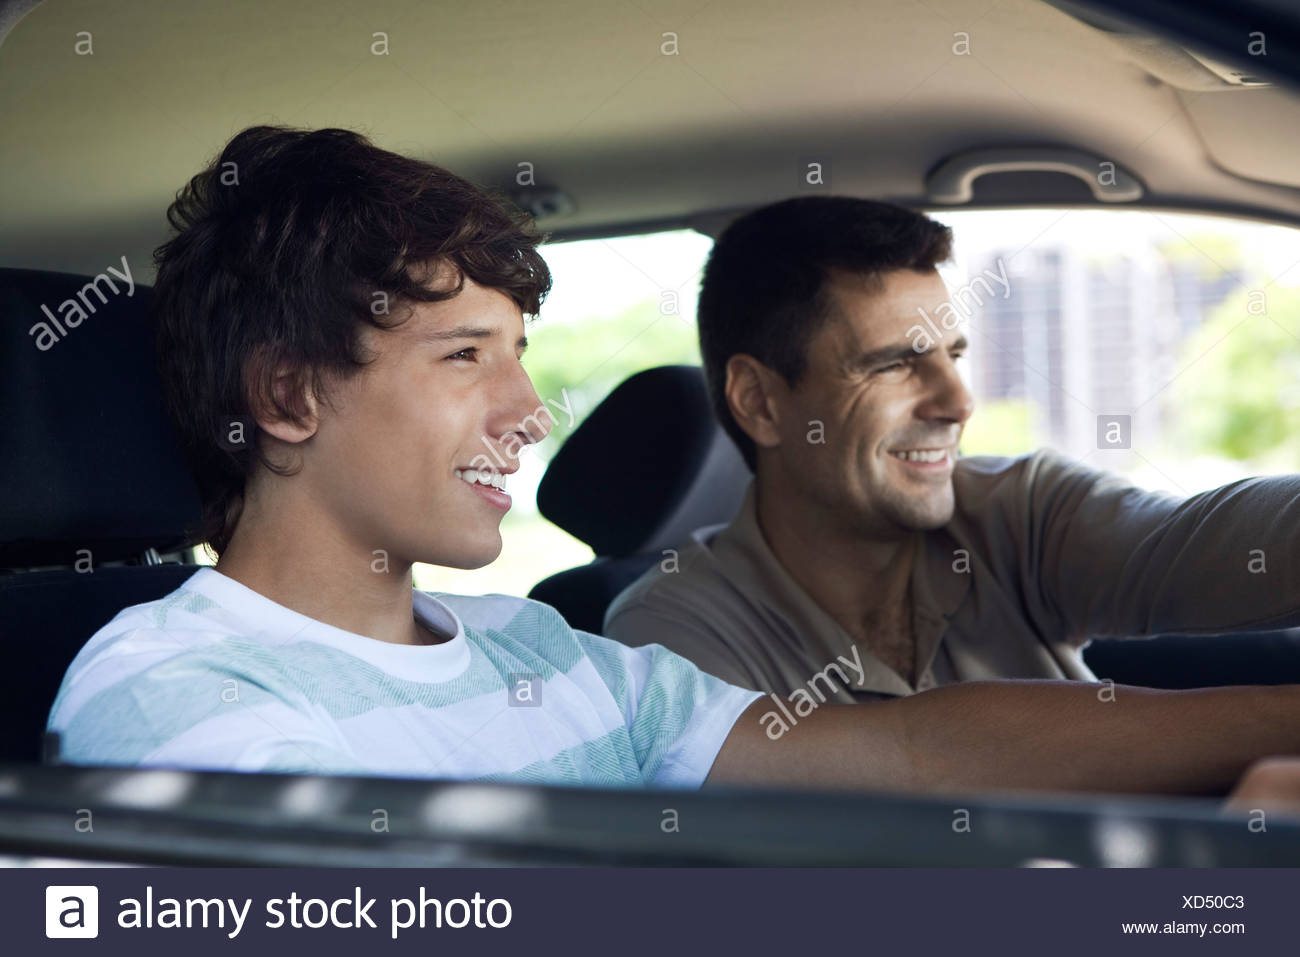 Father teaching son to drive - Stock Image